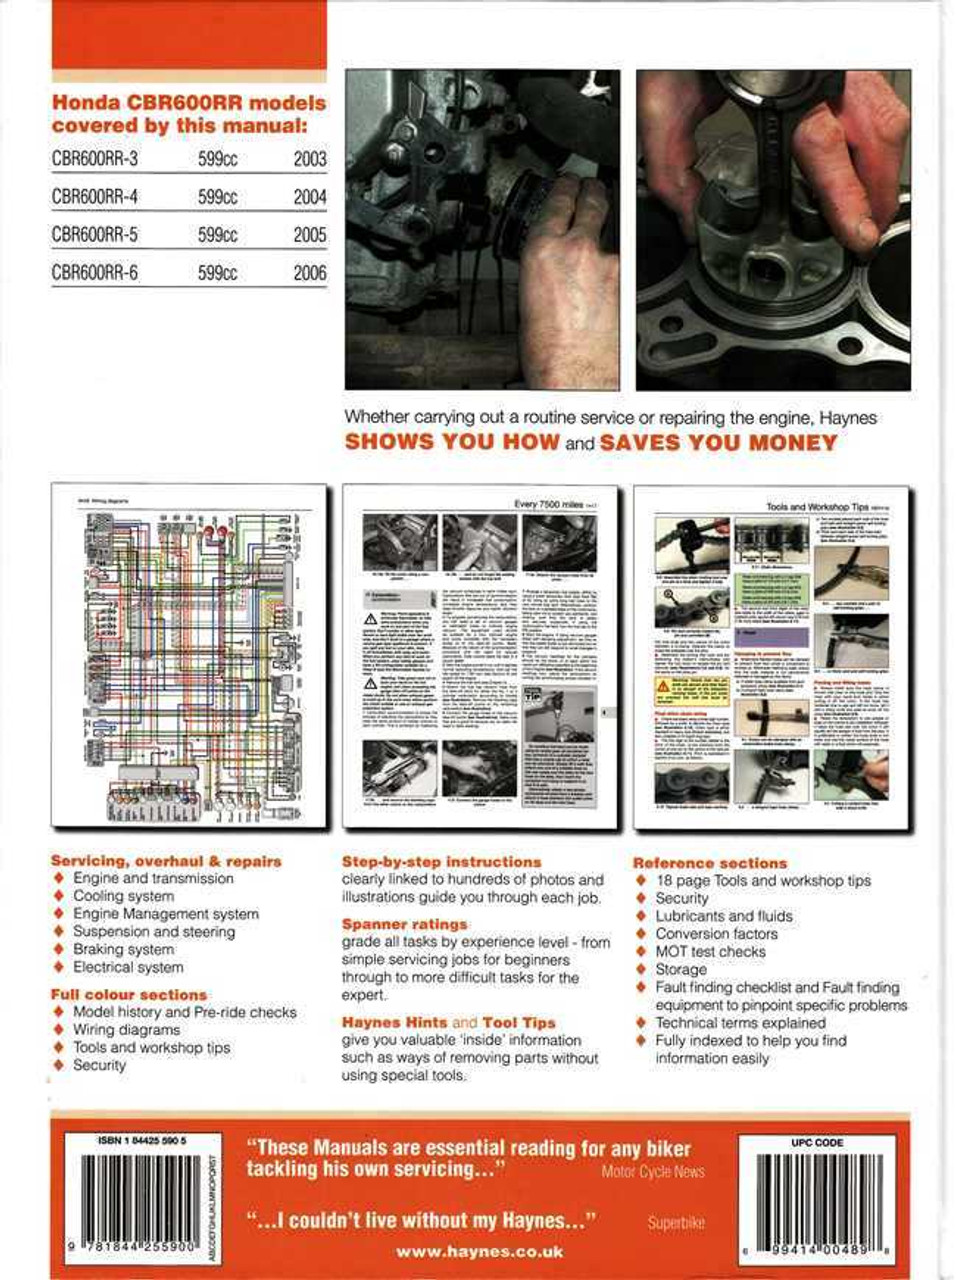 honda cbr600rr 3 4 5 6 2003 2006 workshop manual 2005 cbr600rr review 2005 cbr 600 rr color wiring diagram [ 956 x 1280 Pixel ]